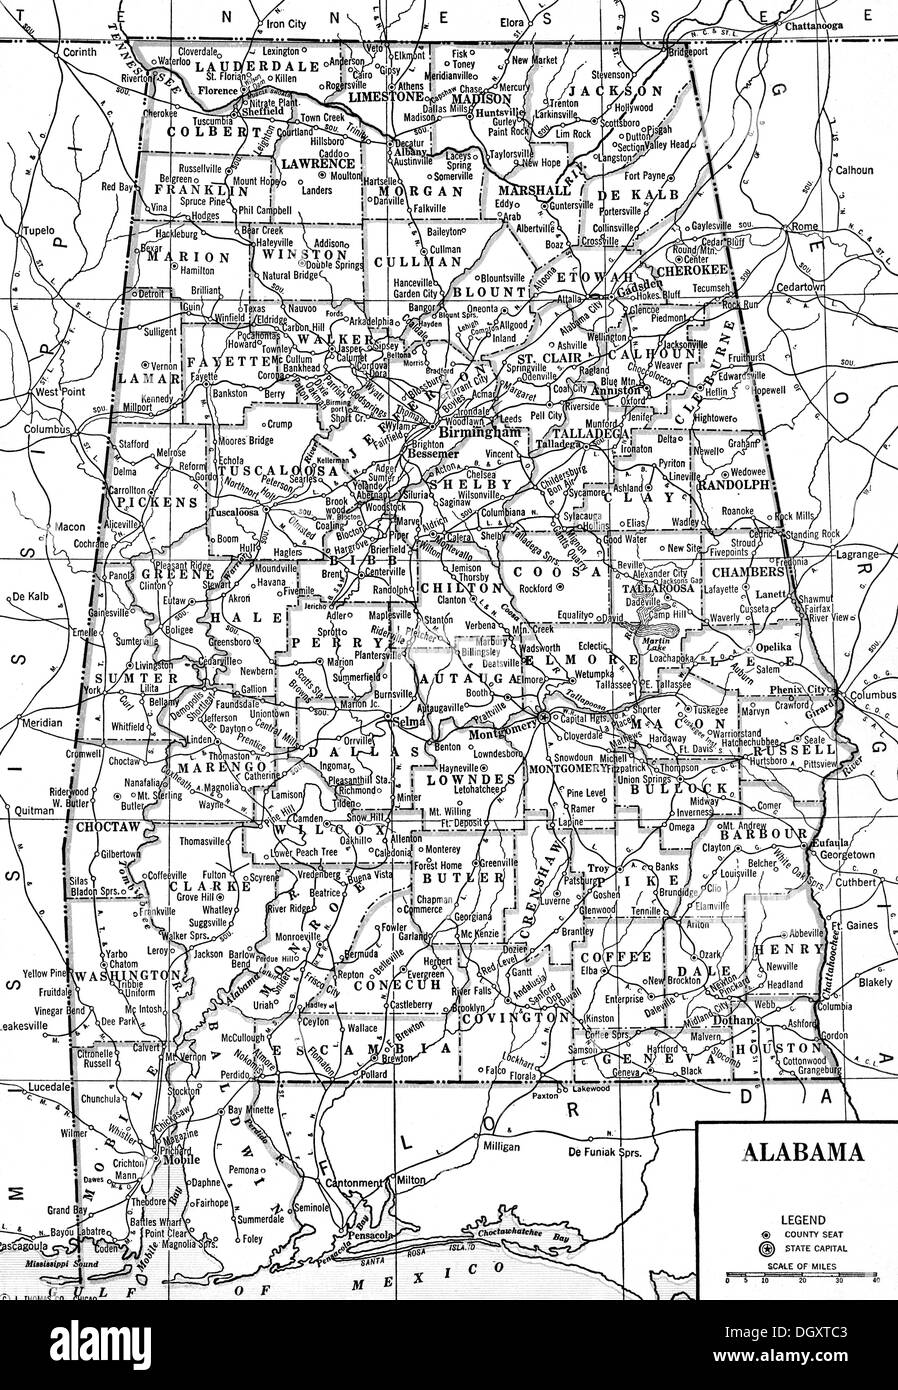 Old Map Of Alabama State S Stock Photo Royalty Free Image - State of alabama map